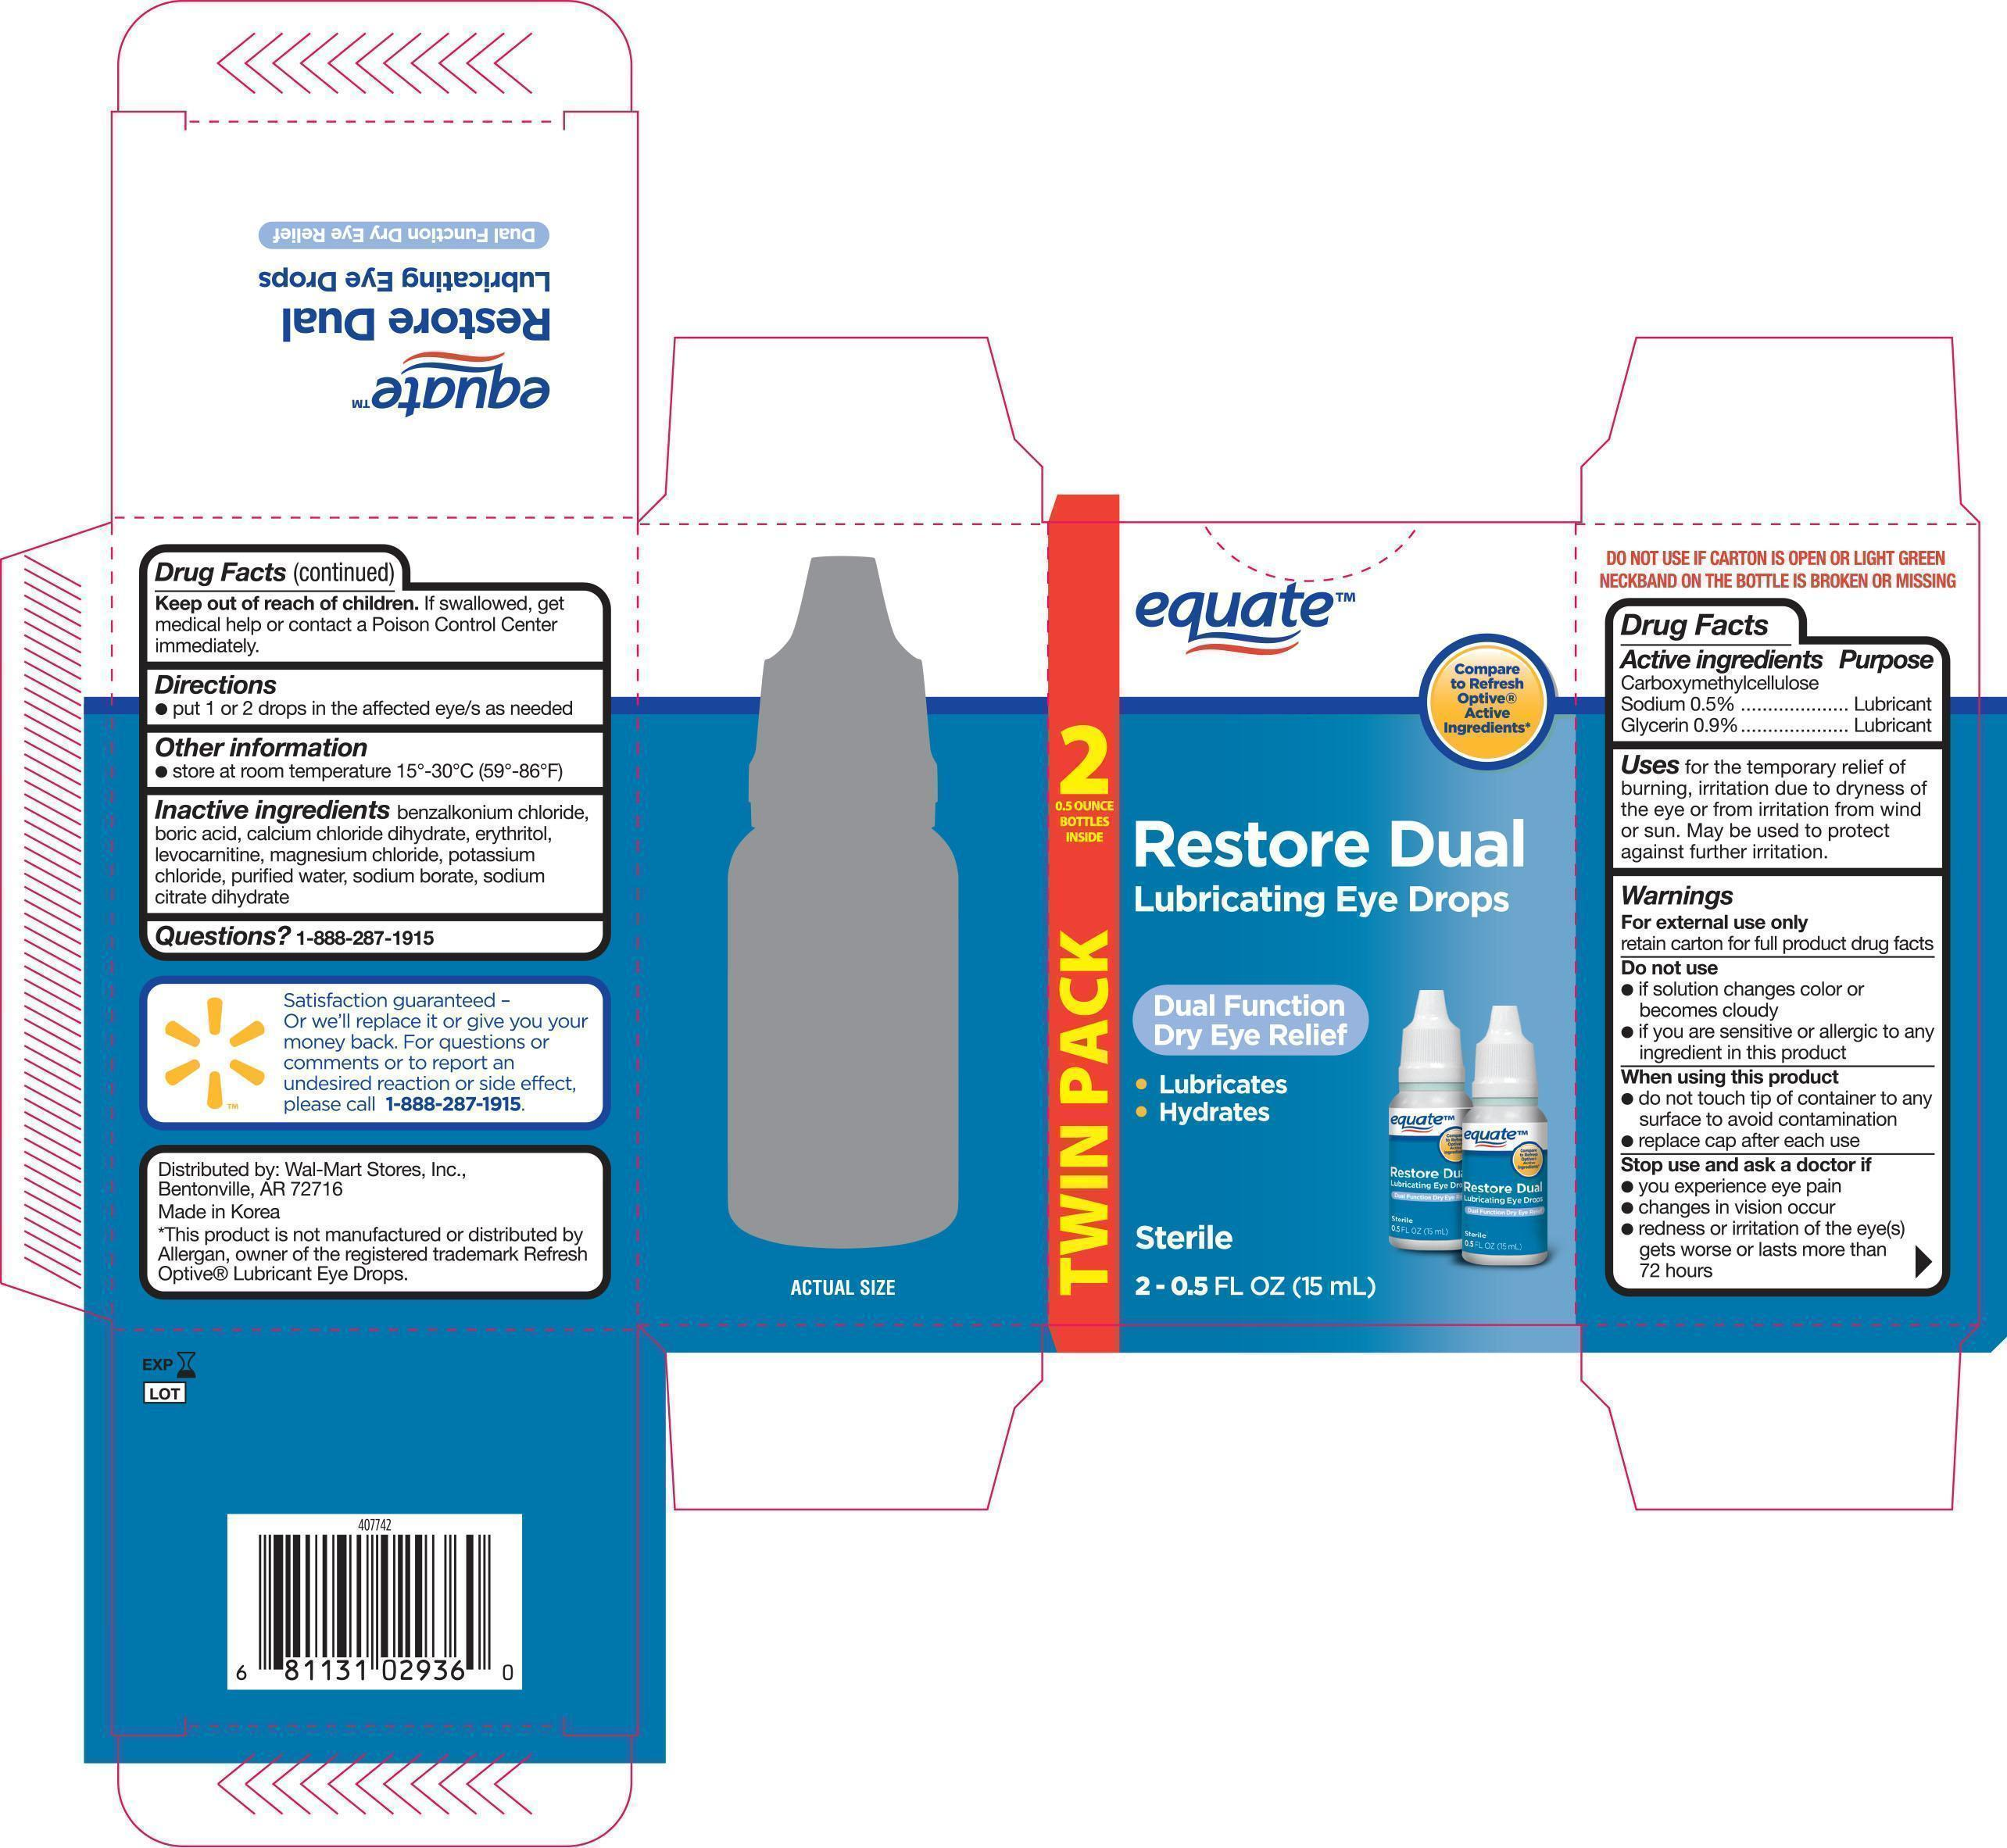 Equate Lubricating Eye Drops (Carboxymethylcellulose Sodium, Glycerin) Solution [Wal-mart Stores Inc]